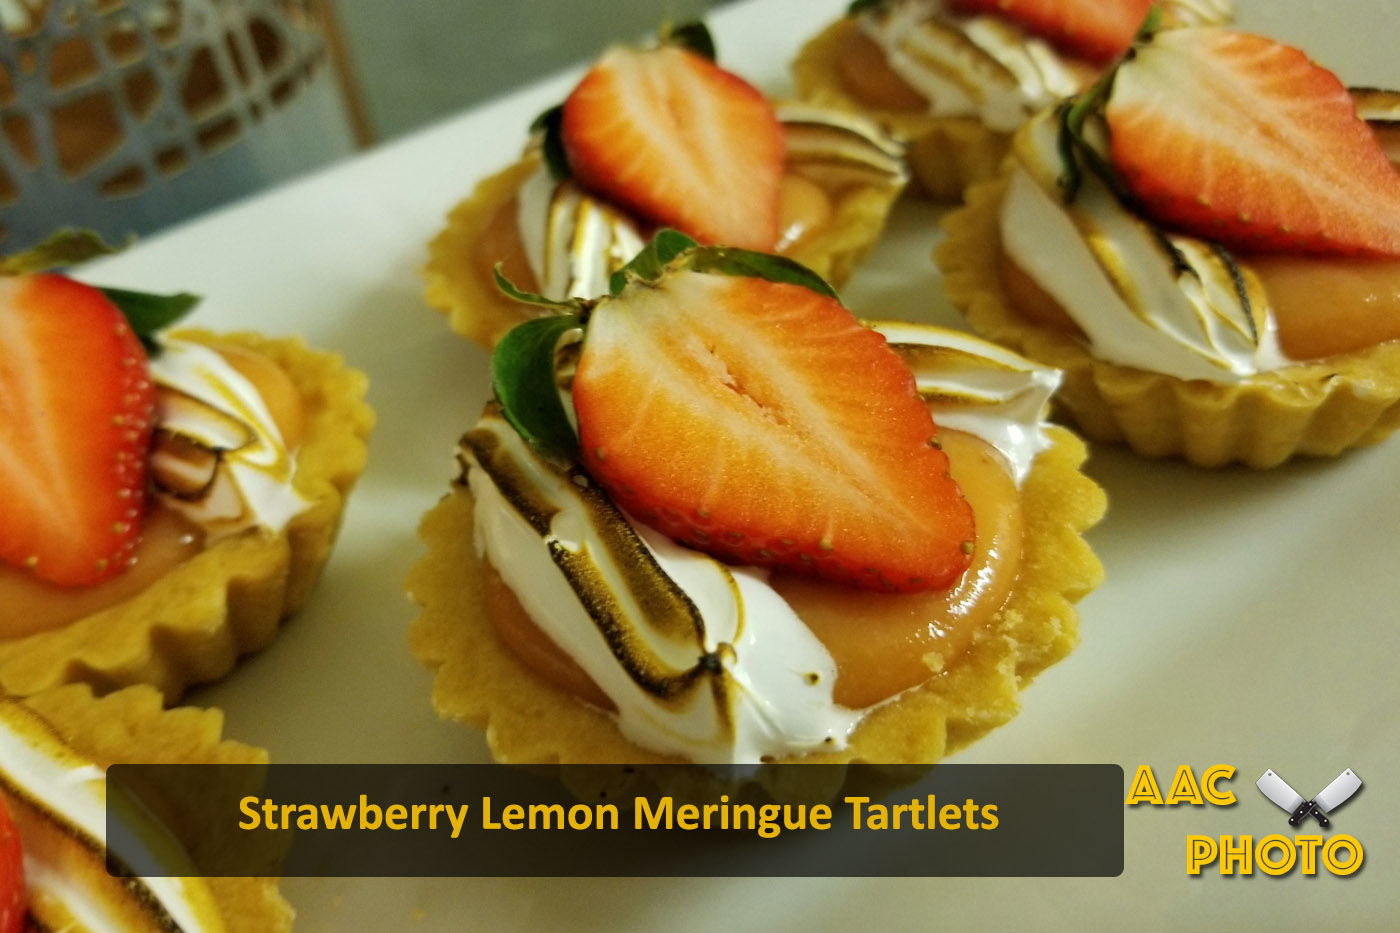 Strawberry Lemon Meringue Tartlets